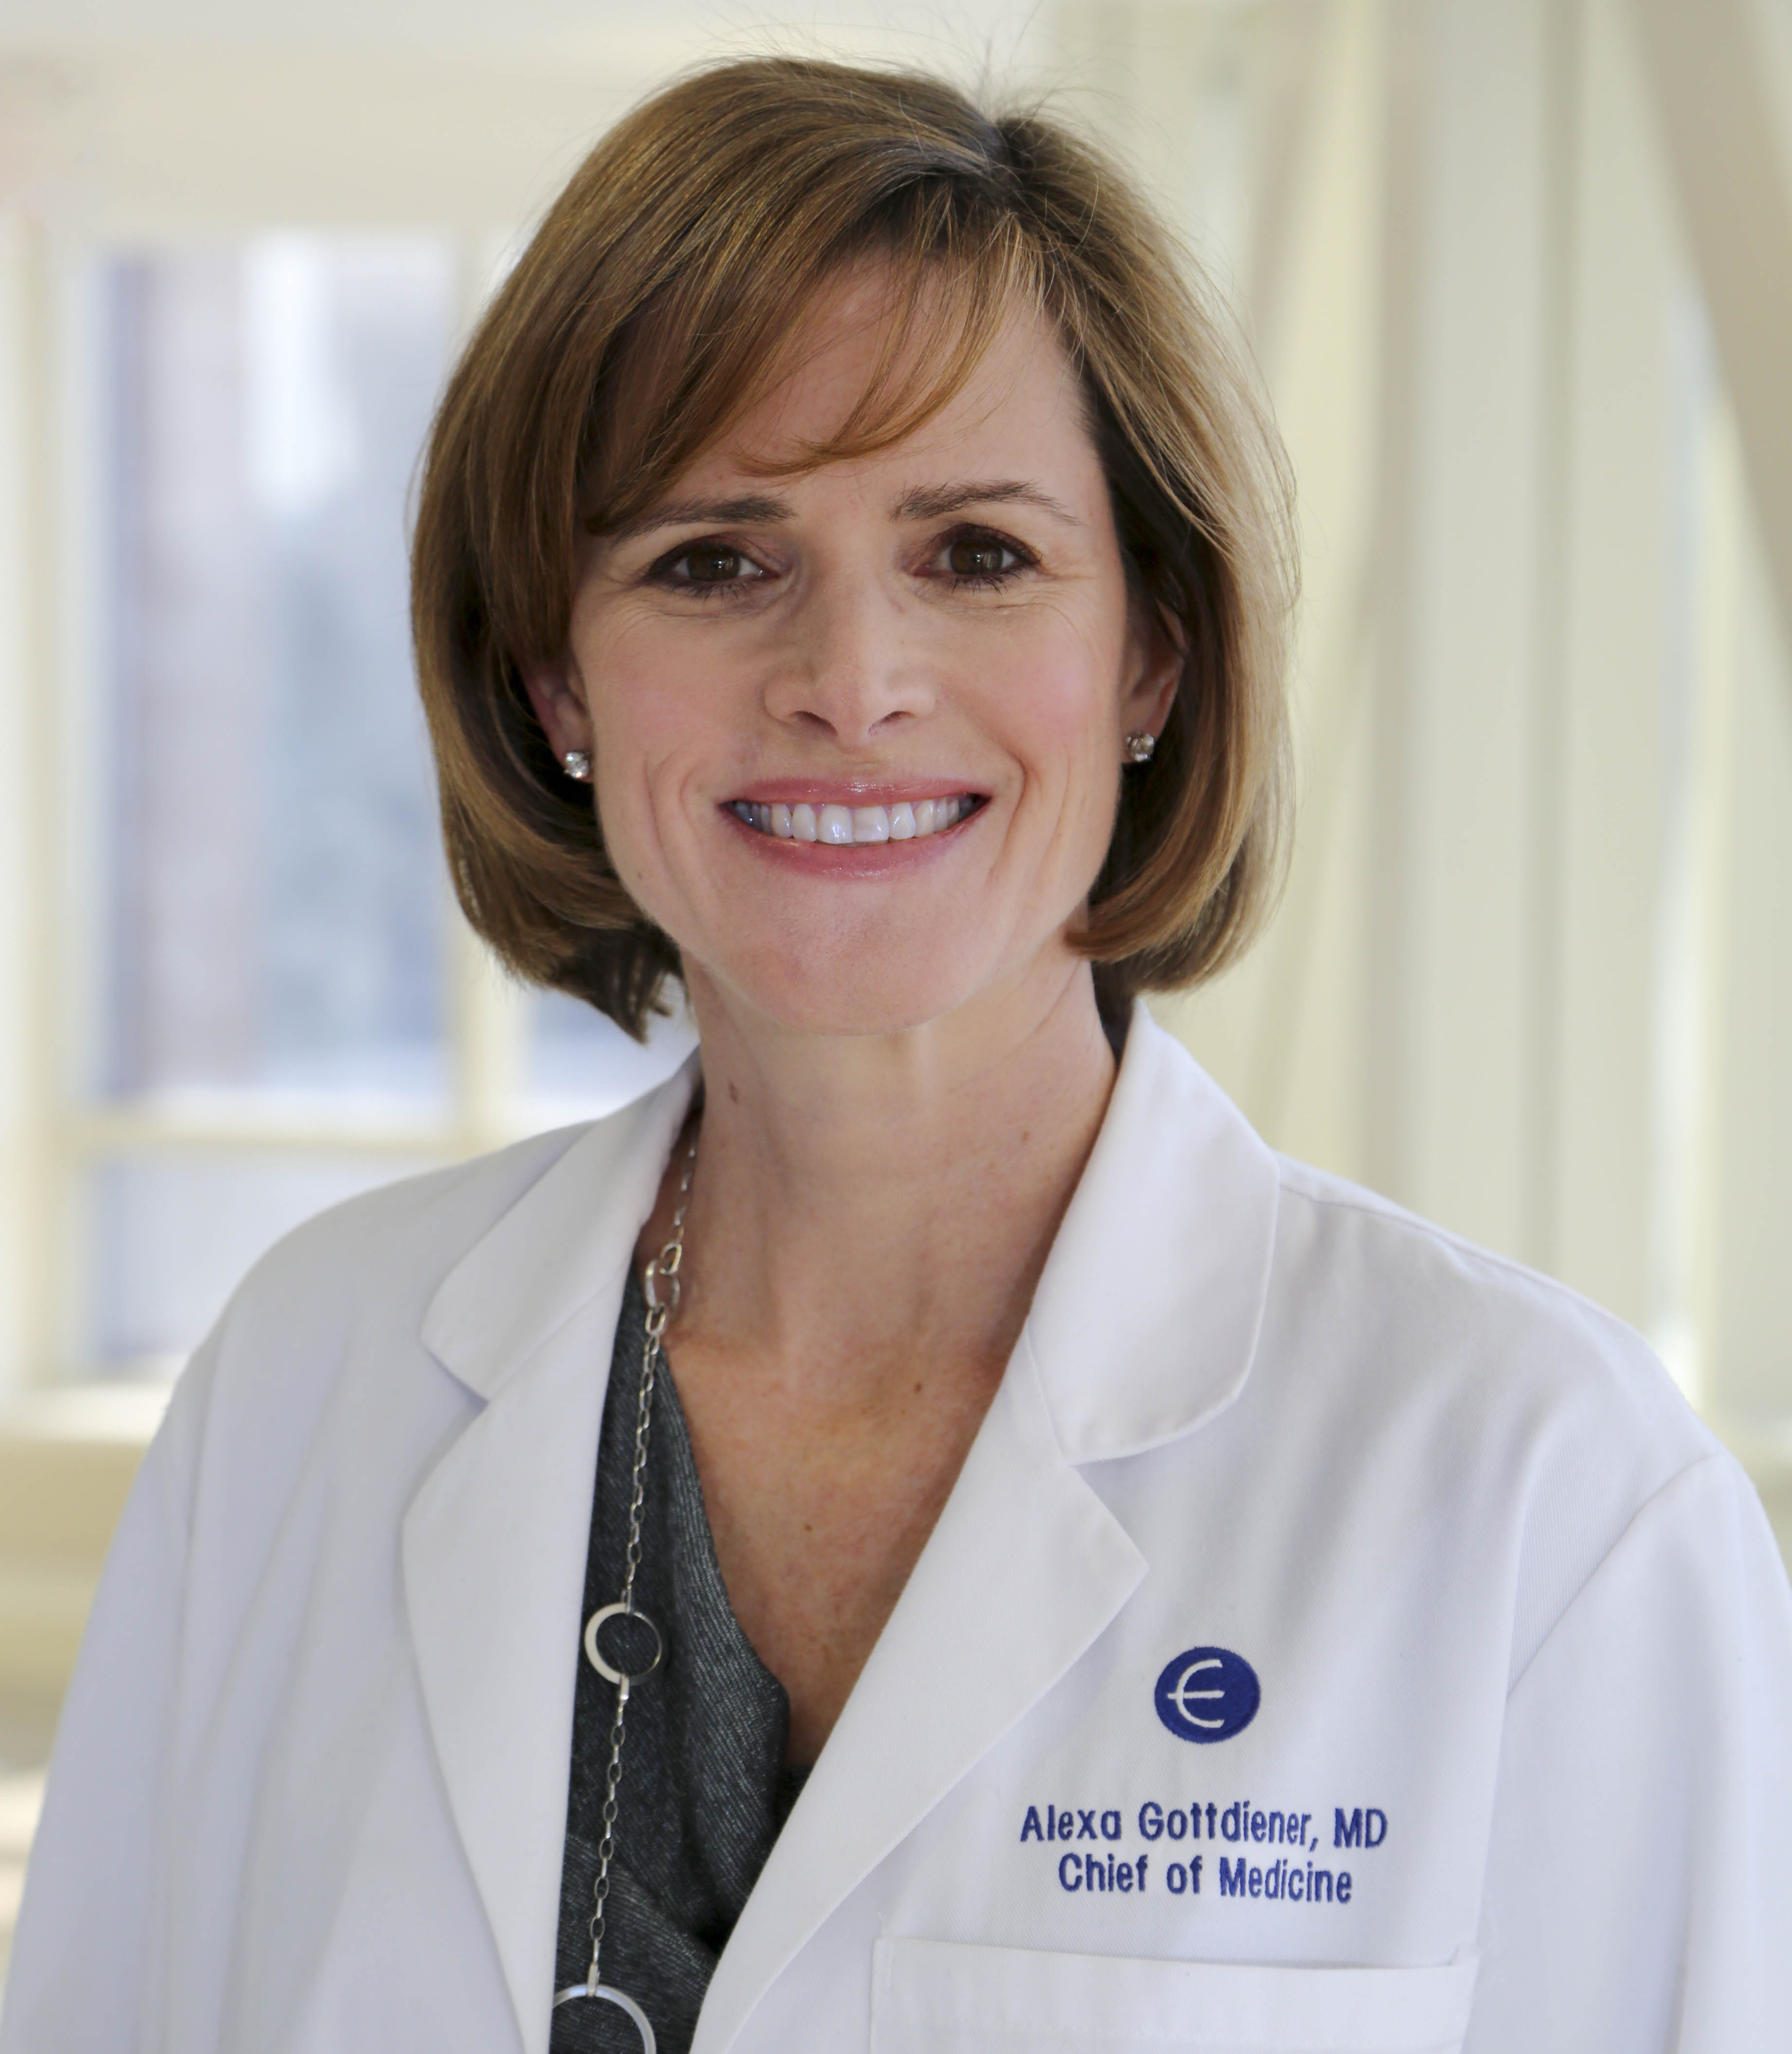 Dr. Alexandra Gottdiener, MD